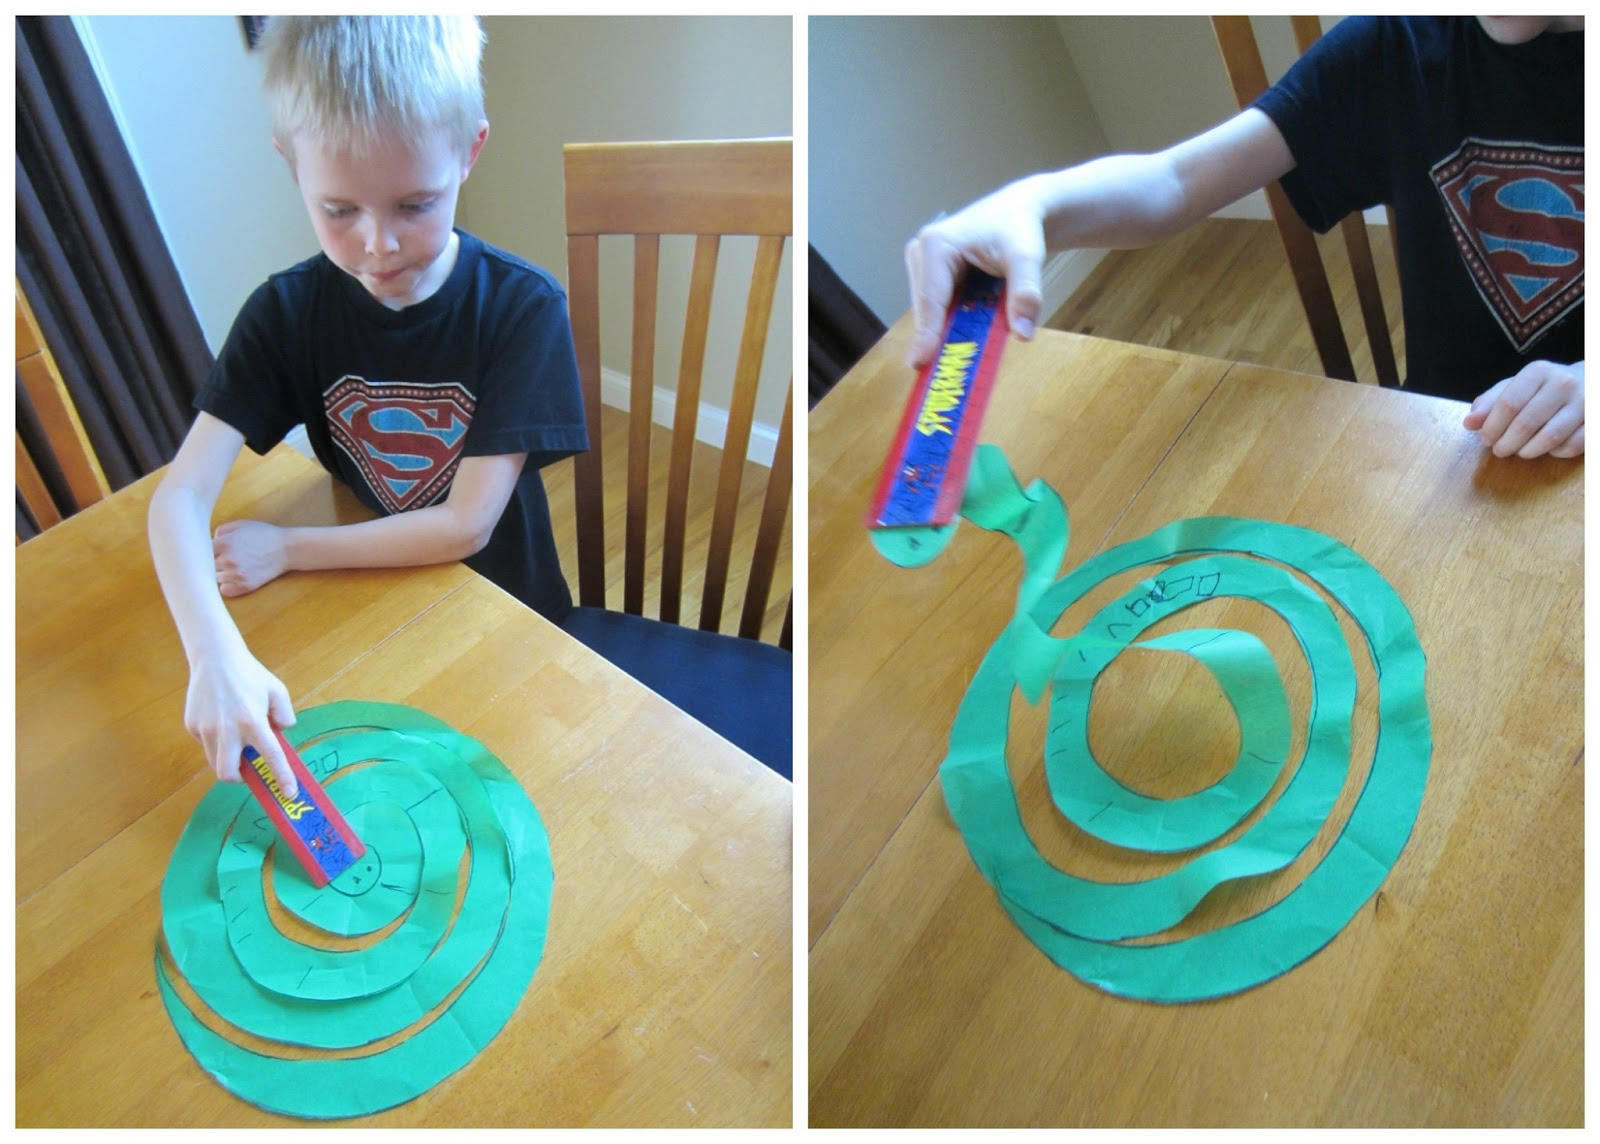 Relentlessly fun deceptively educational one very for Energy games for kids